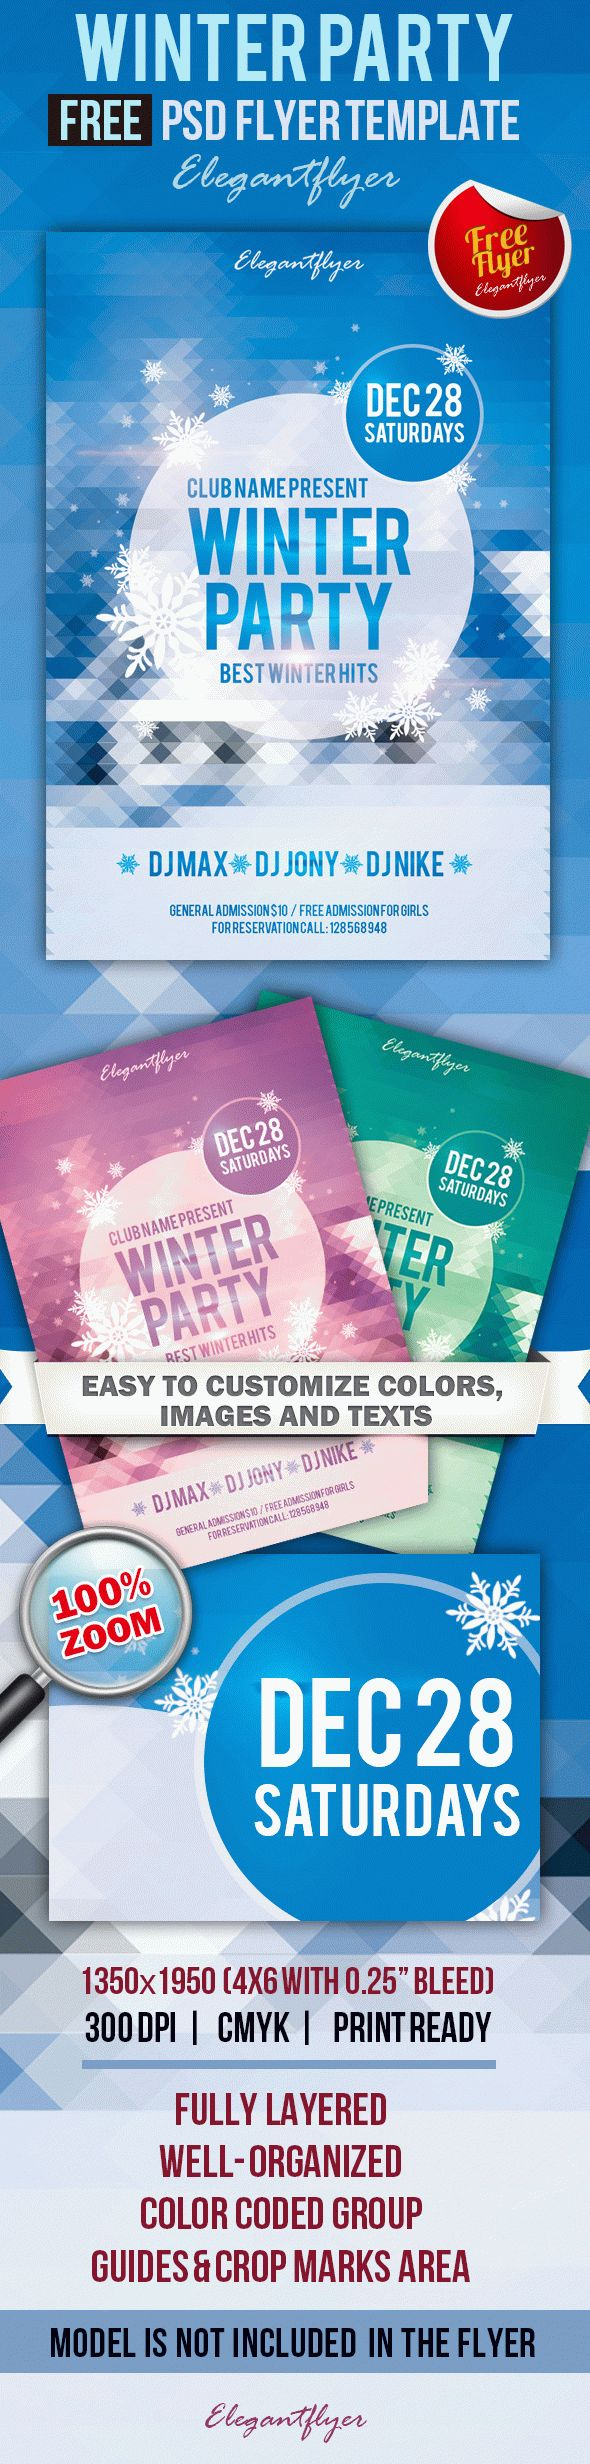 Free Winter Party Flyer PSD Template